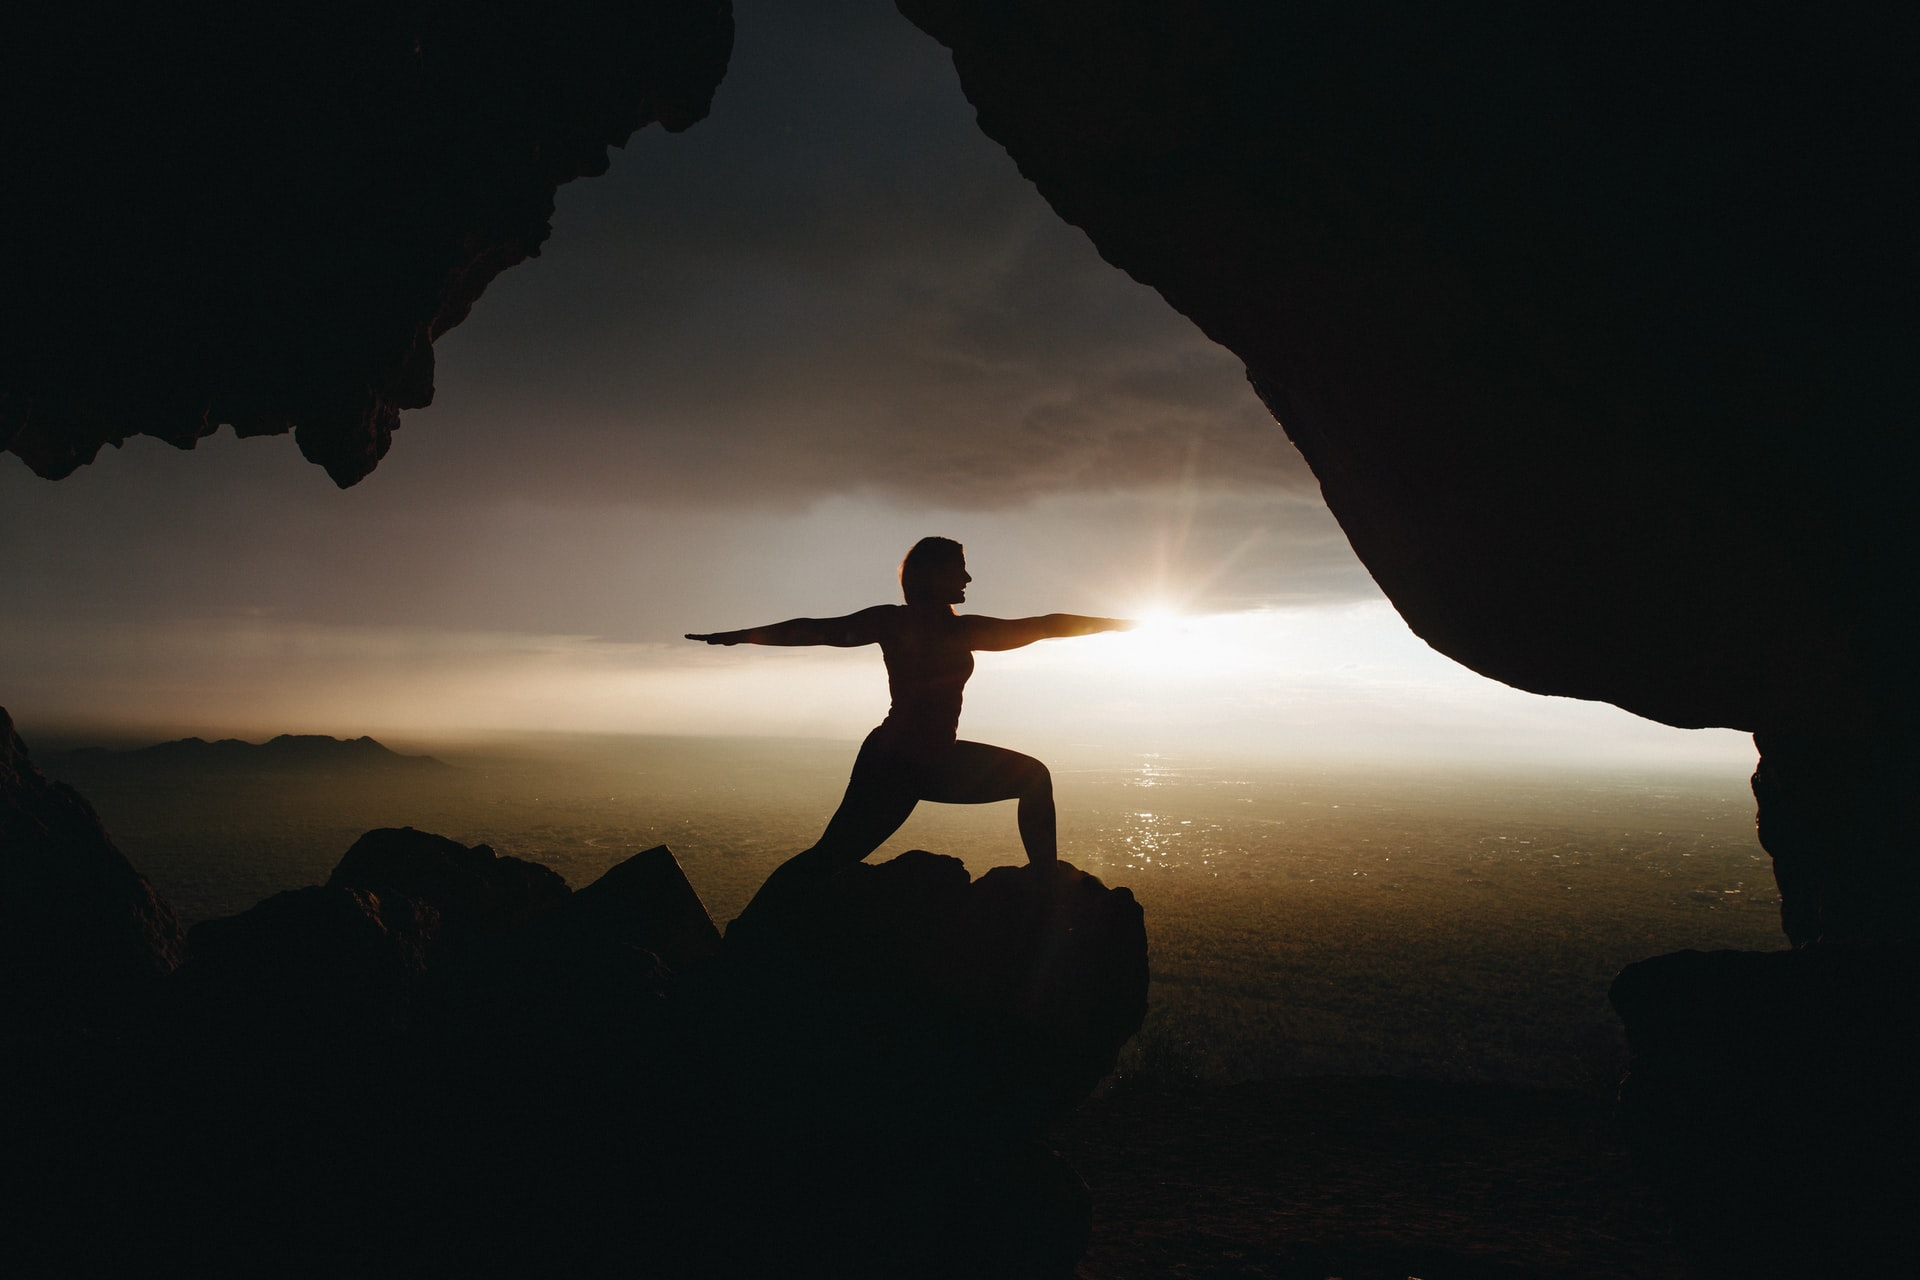 Yoga on mountain top at sunset